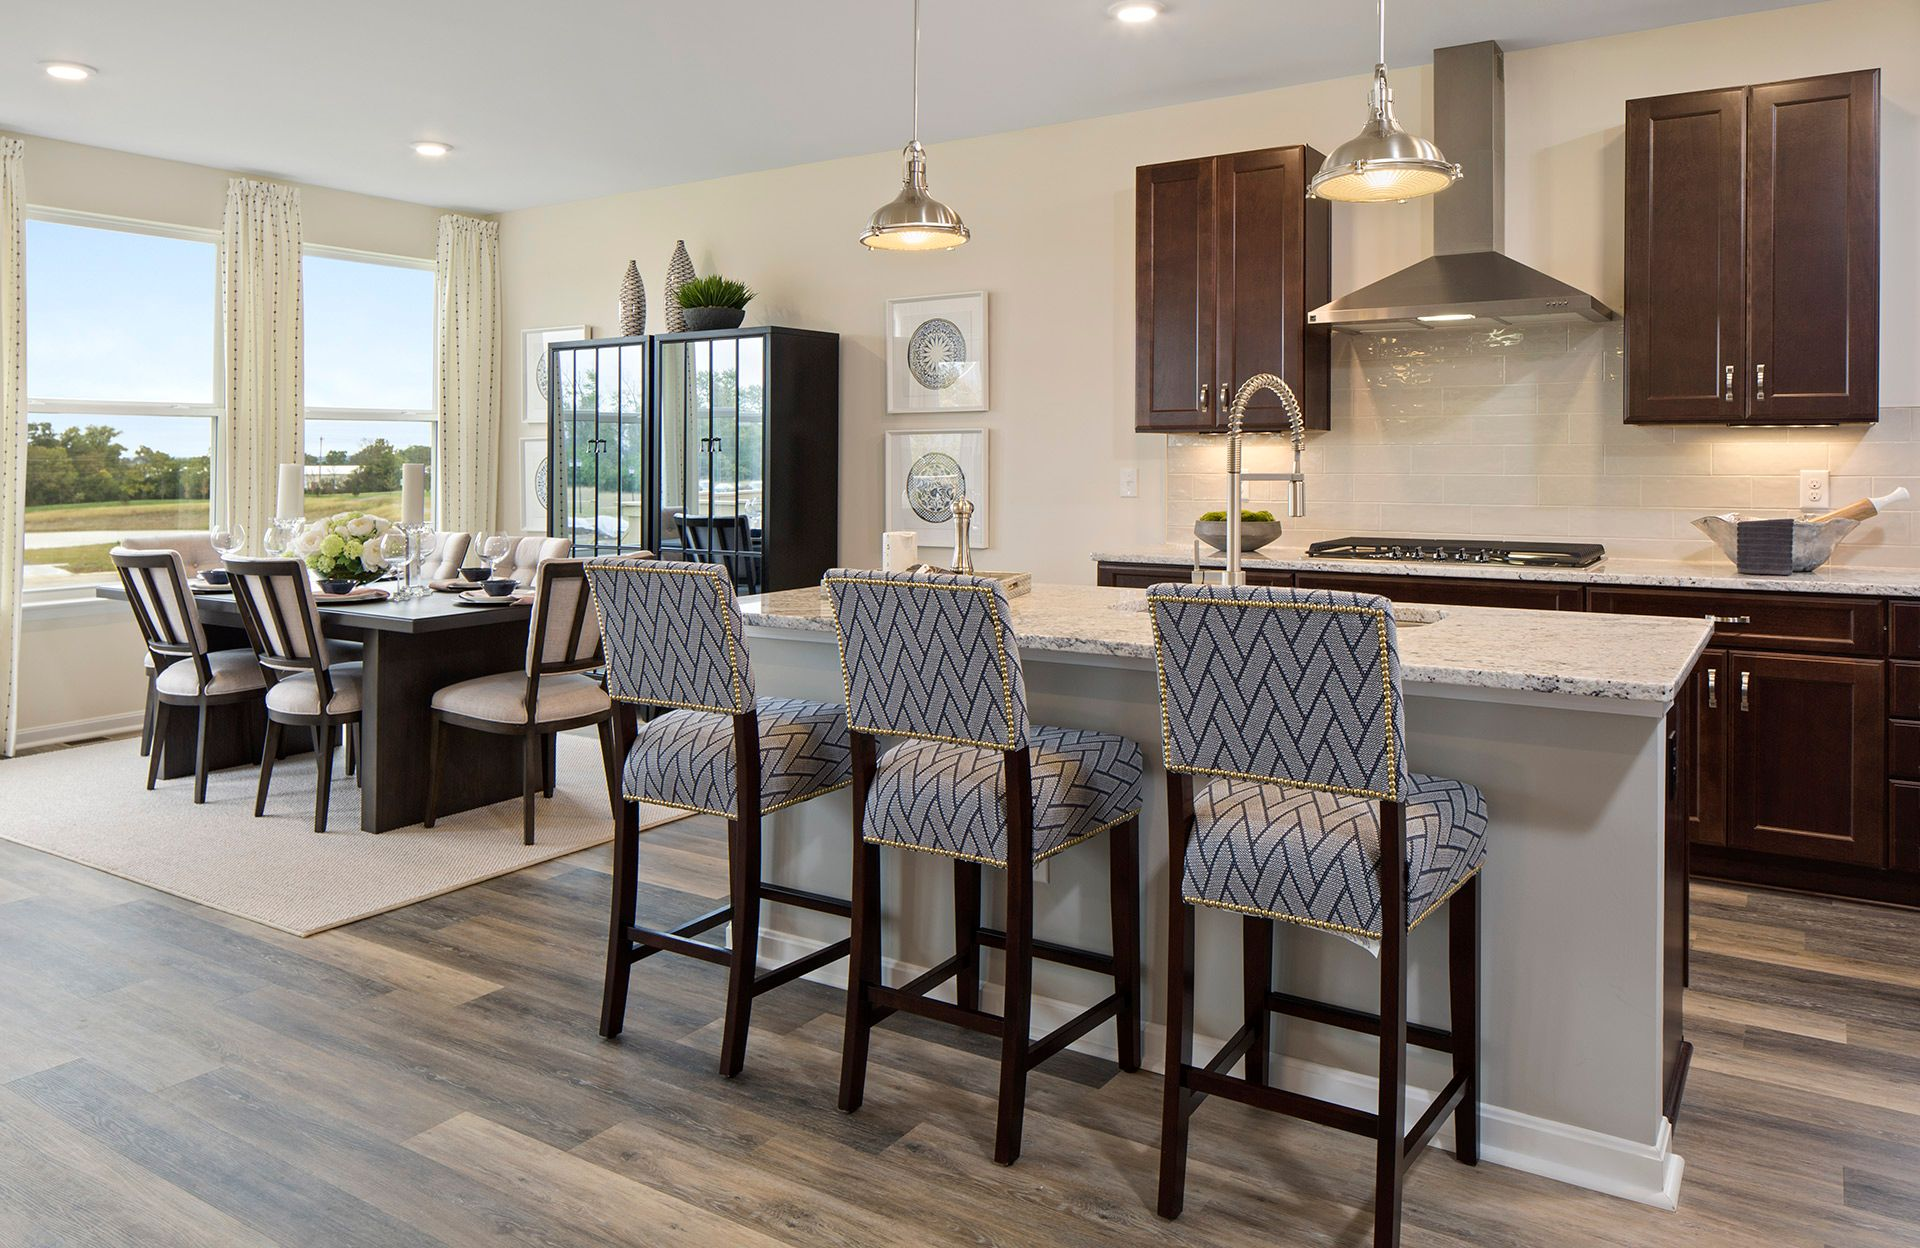 Kitchen featured in the Beachwood By Drees Homes in Cincinnati, OH